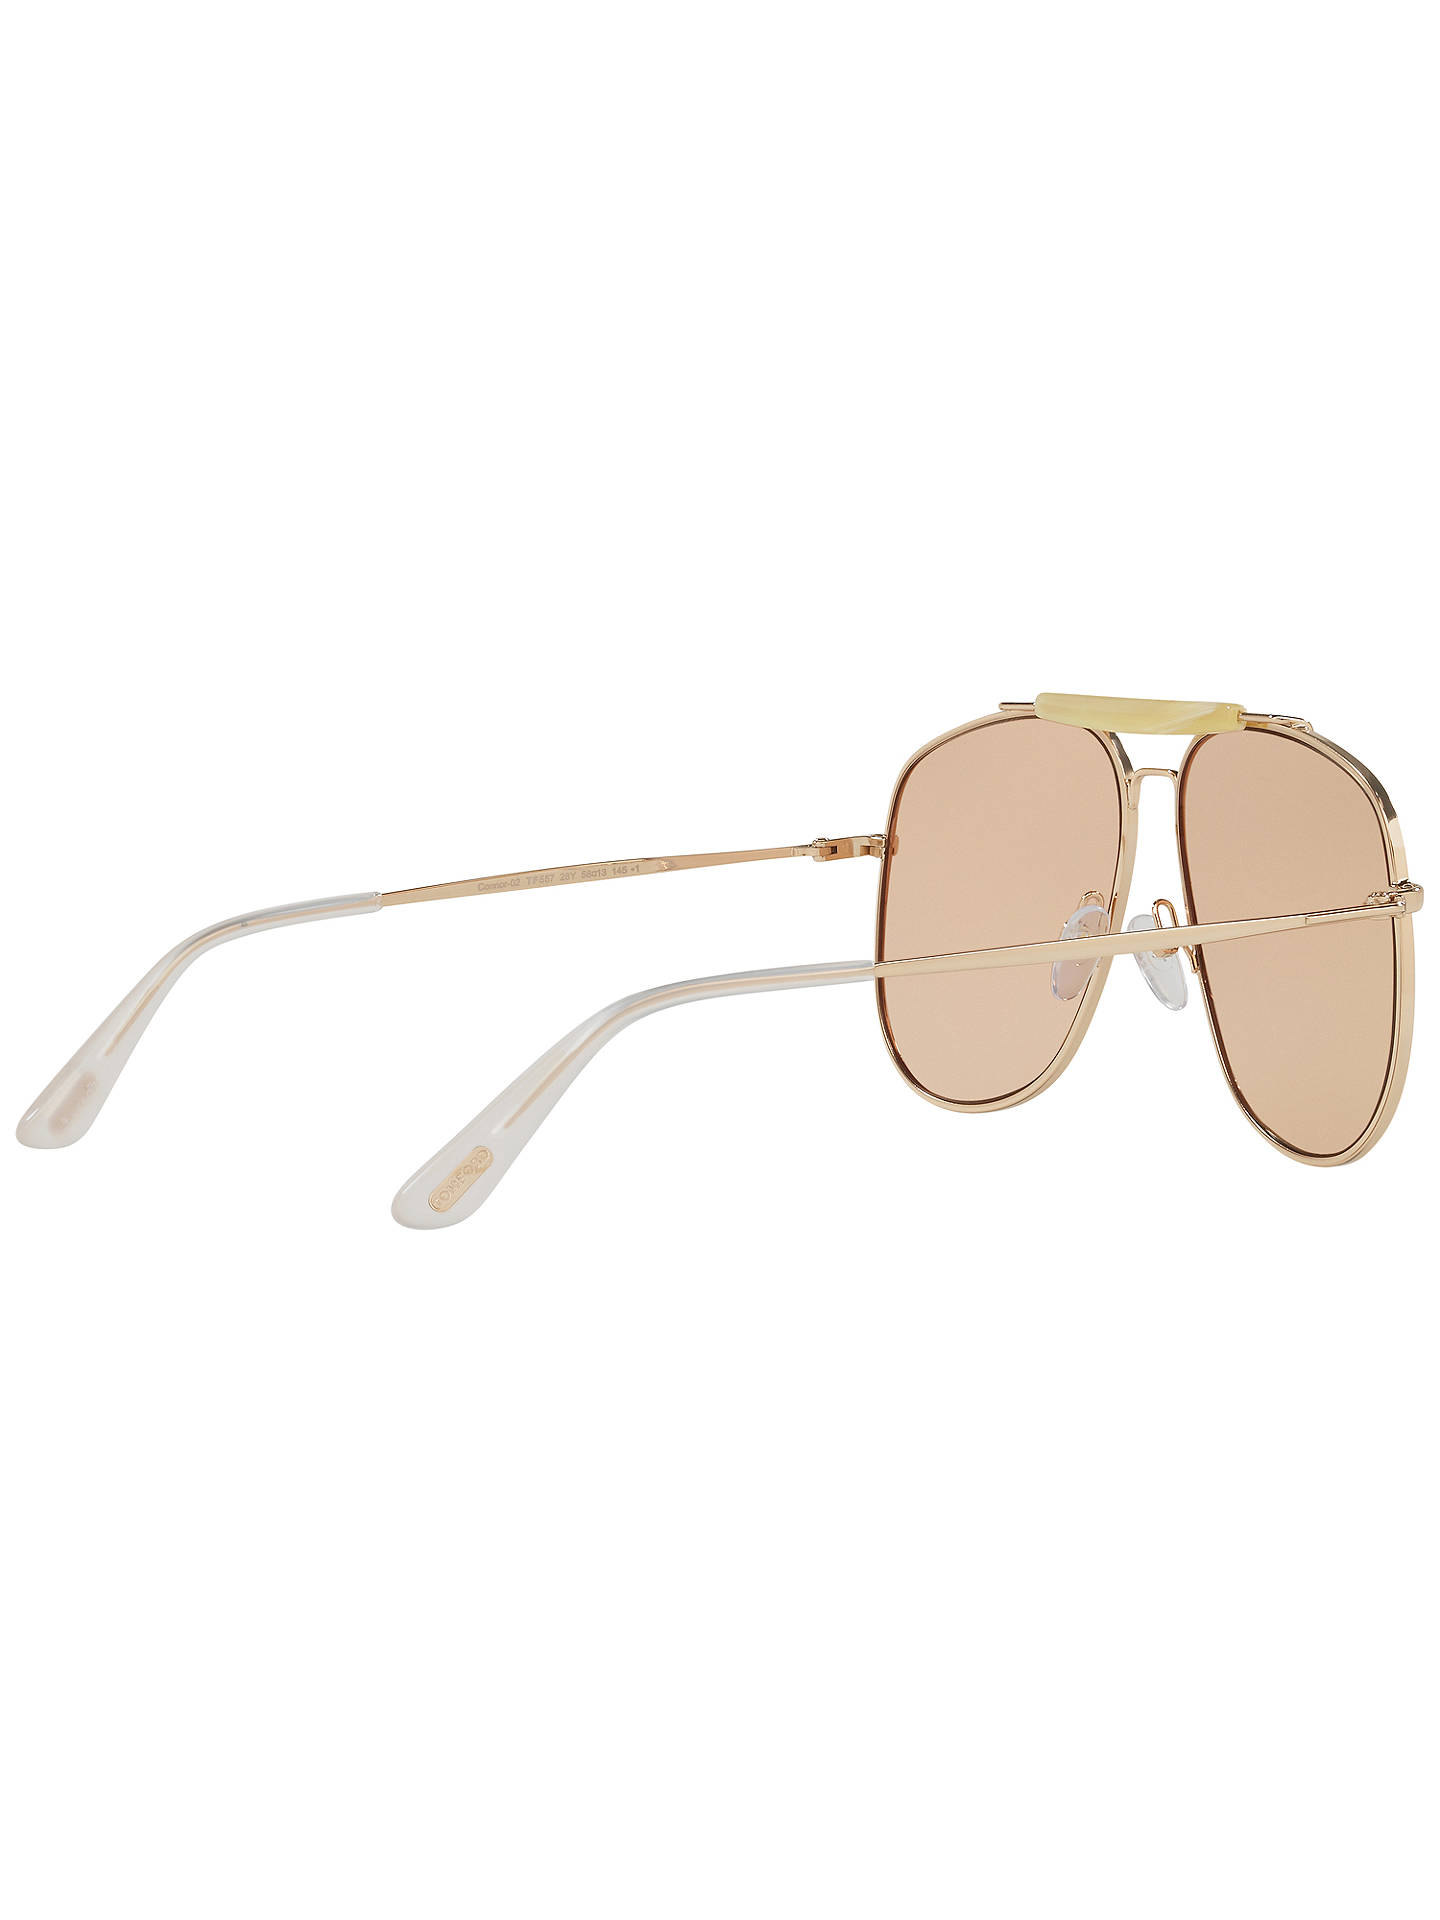 Buy TOM FORD FT0557 Connor Aviator Sunglasses, Gold/Beige Online at johnlewis.com